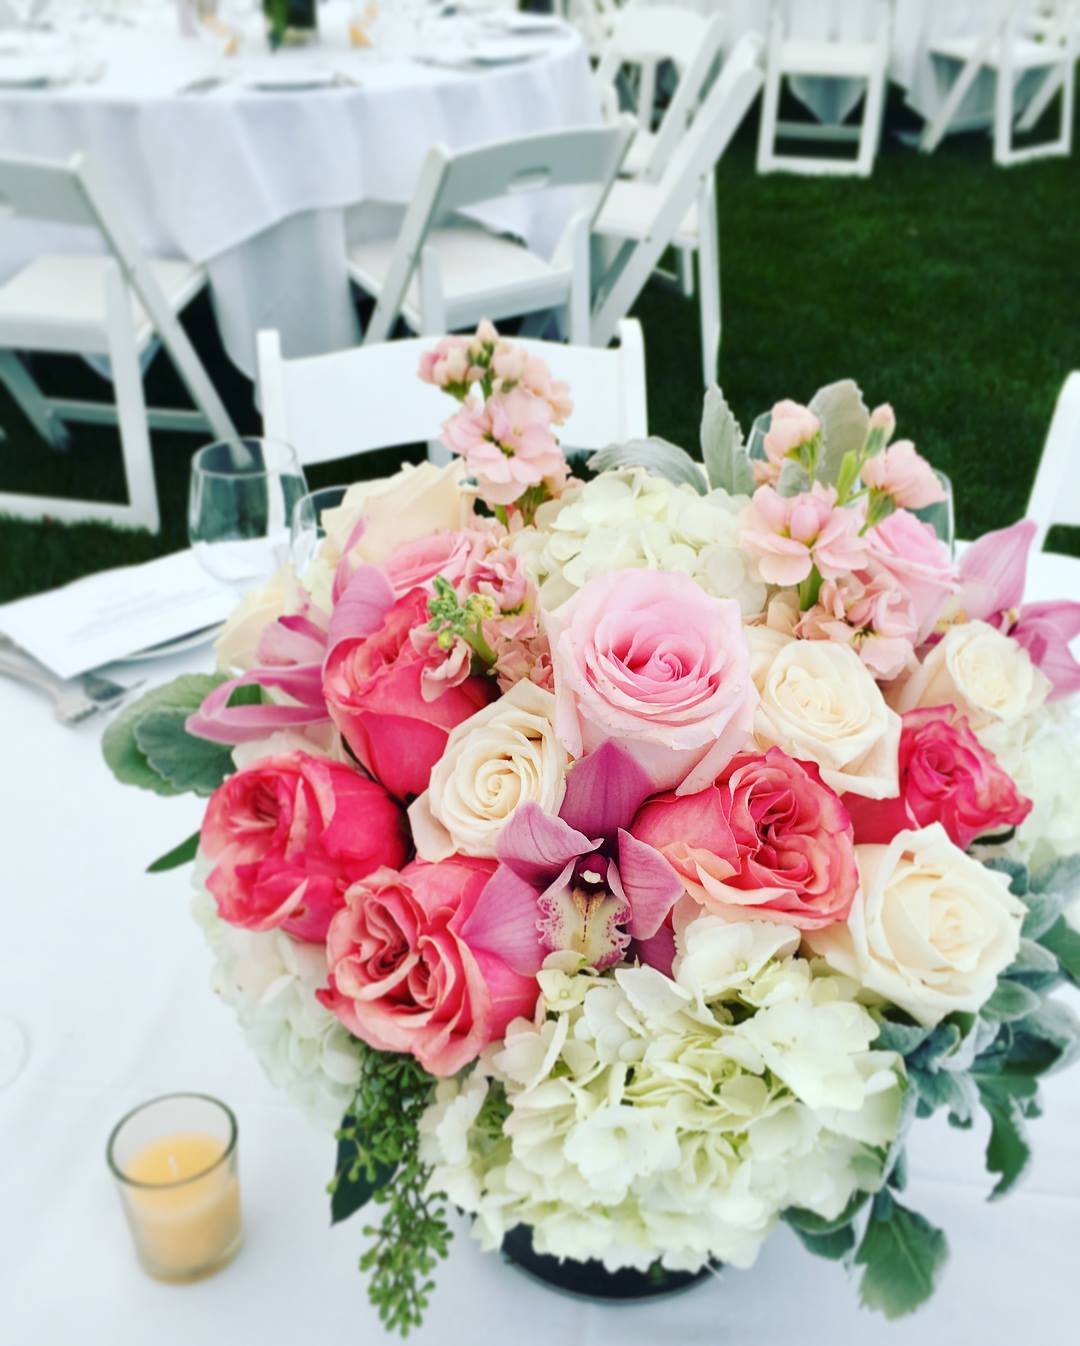 Centerpiece flowers with Roses, Hydrangeas, Snapdragons, and Greens